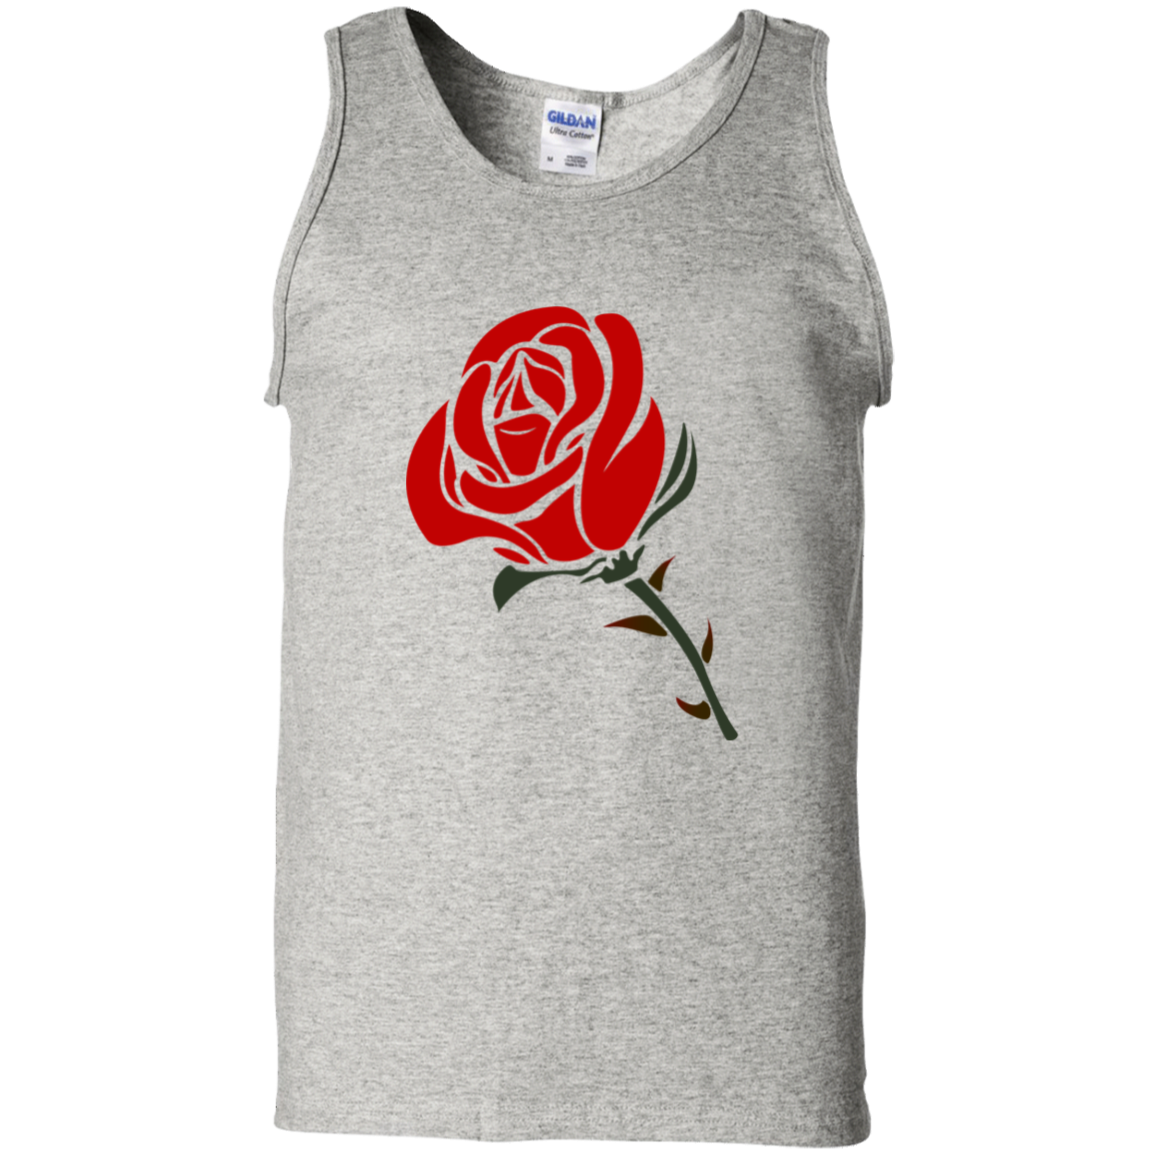 G220 Gildan 100% Cotton Tank Top / Roses